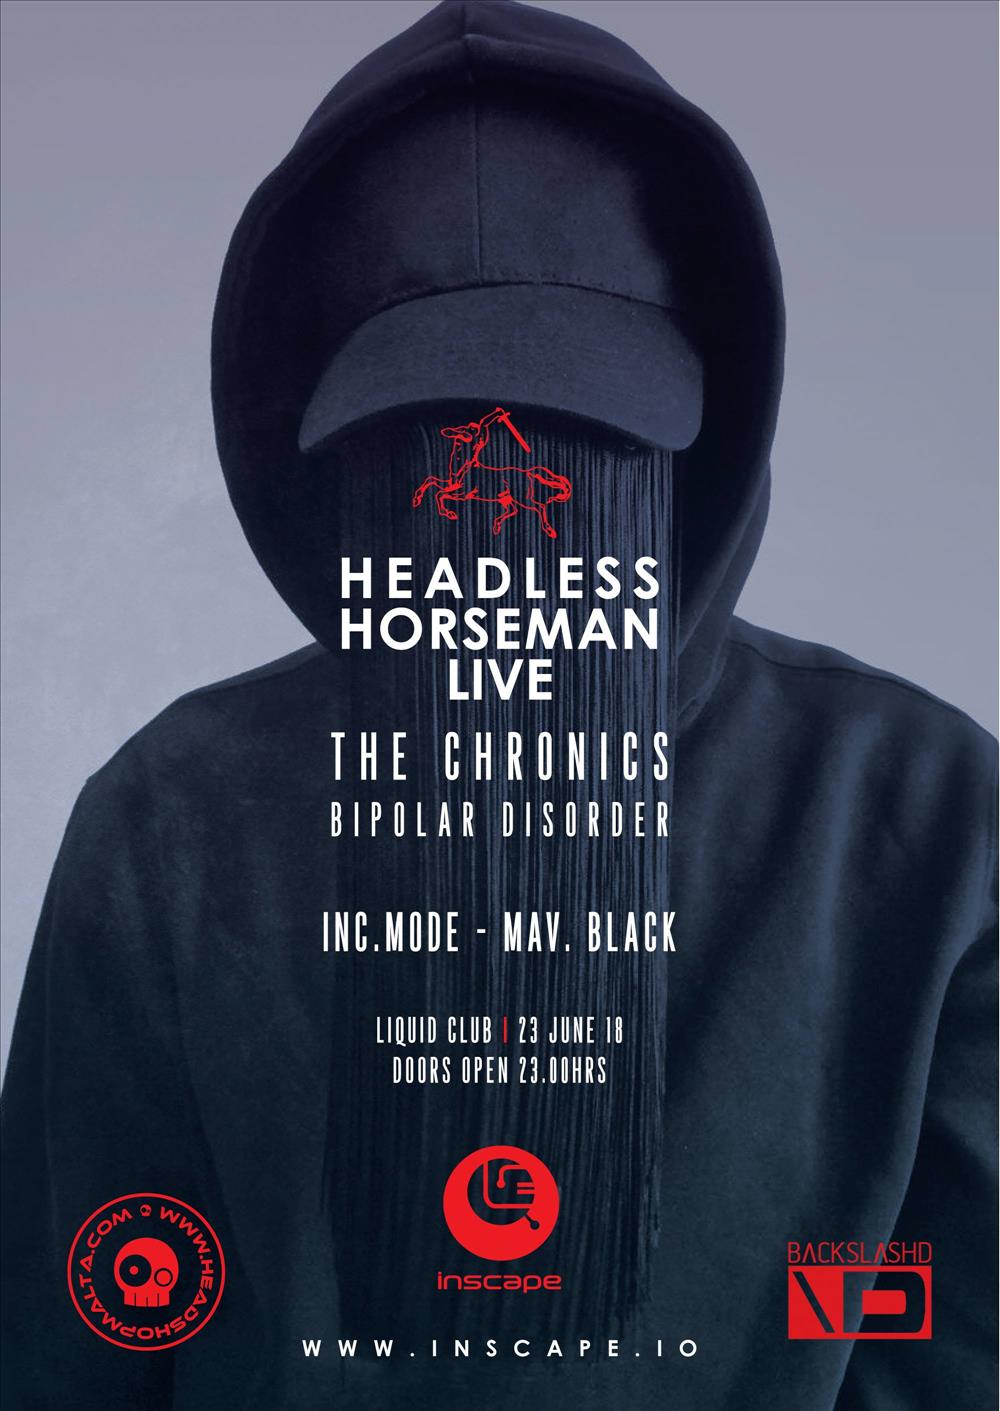 Inscape - Headless Horseman Live - The Chronics flyer